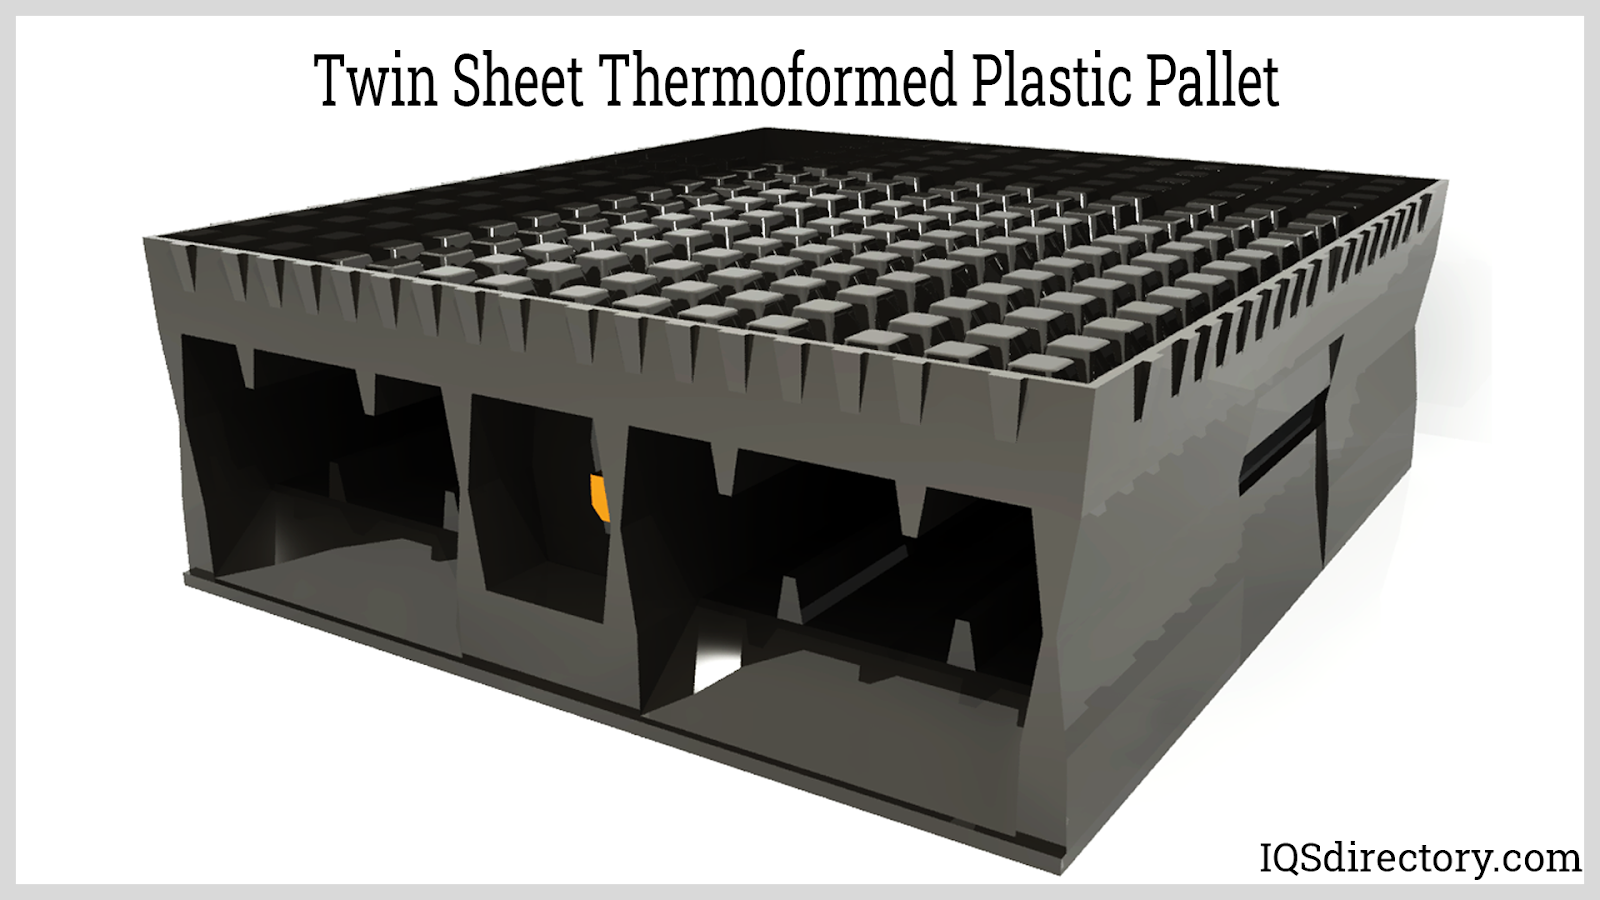 Twin Sheet Thermoformed Plastic Pallet